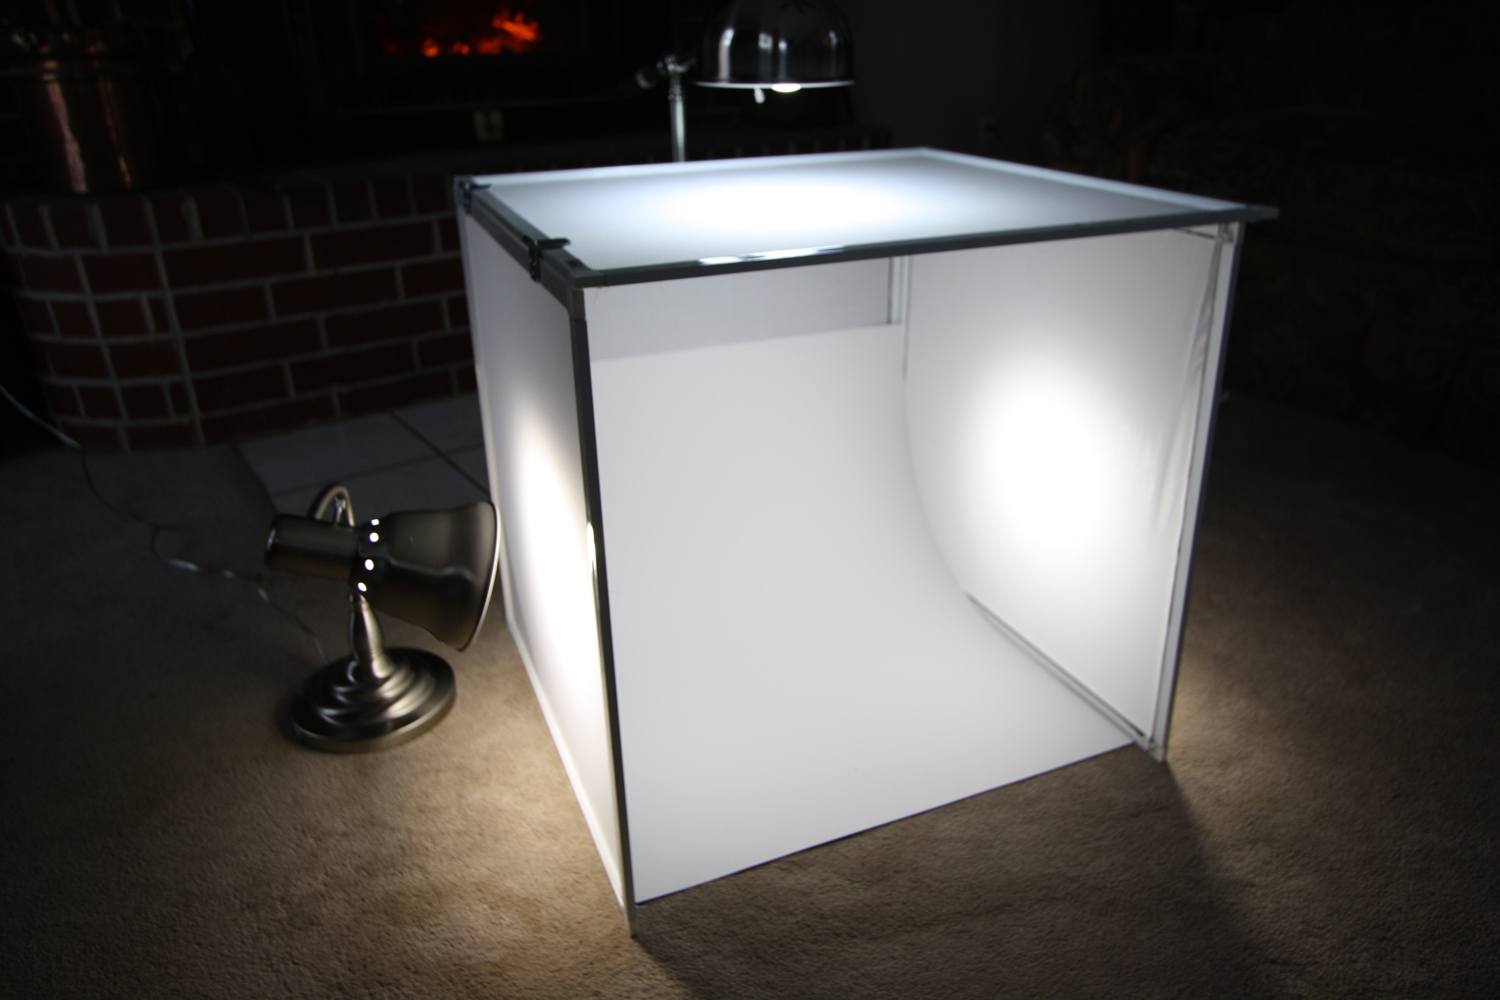 How to Build a Light Box - Easy DIY, Professional, Foldable